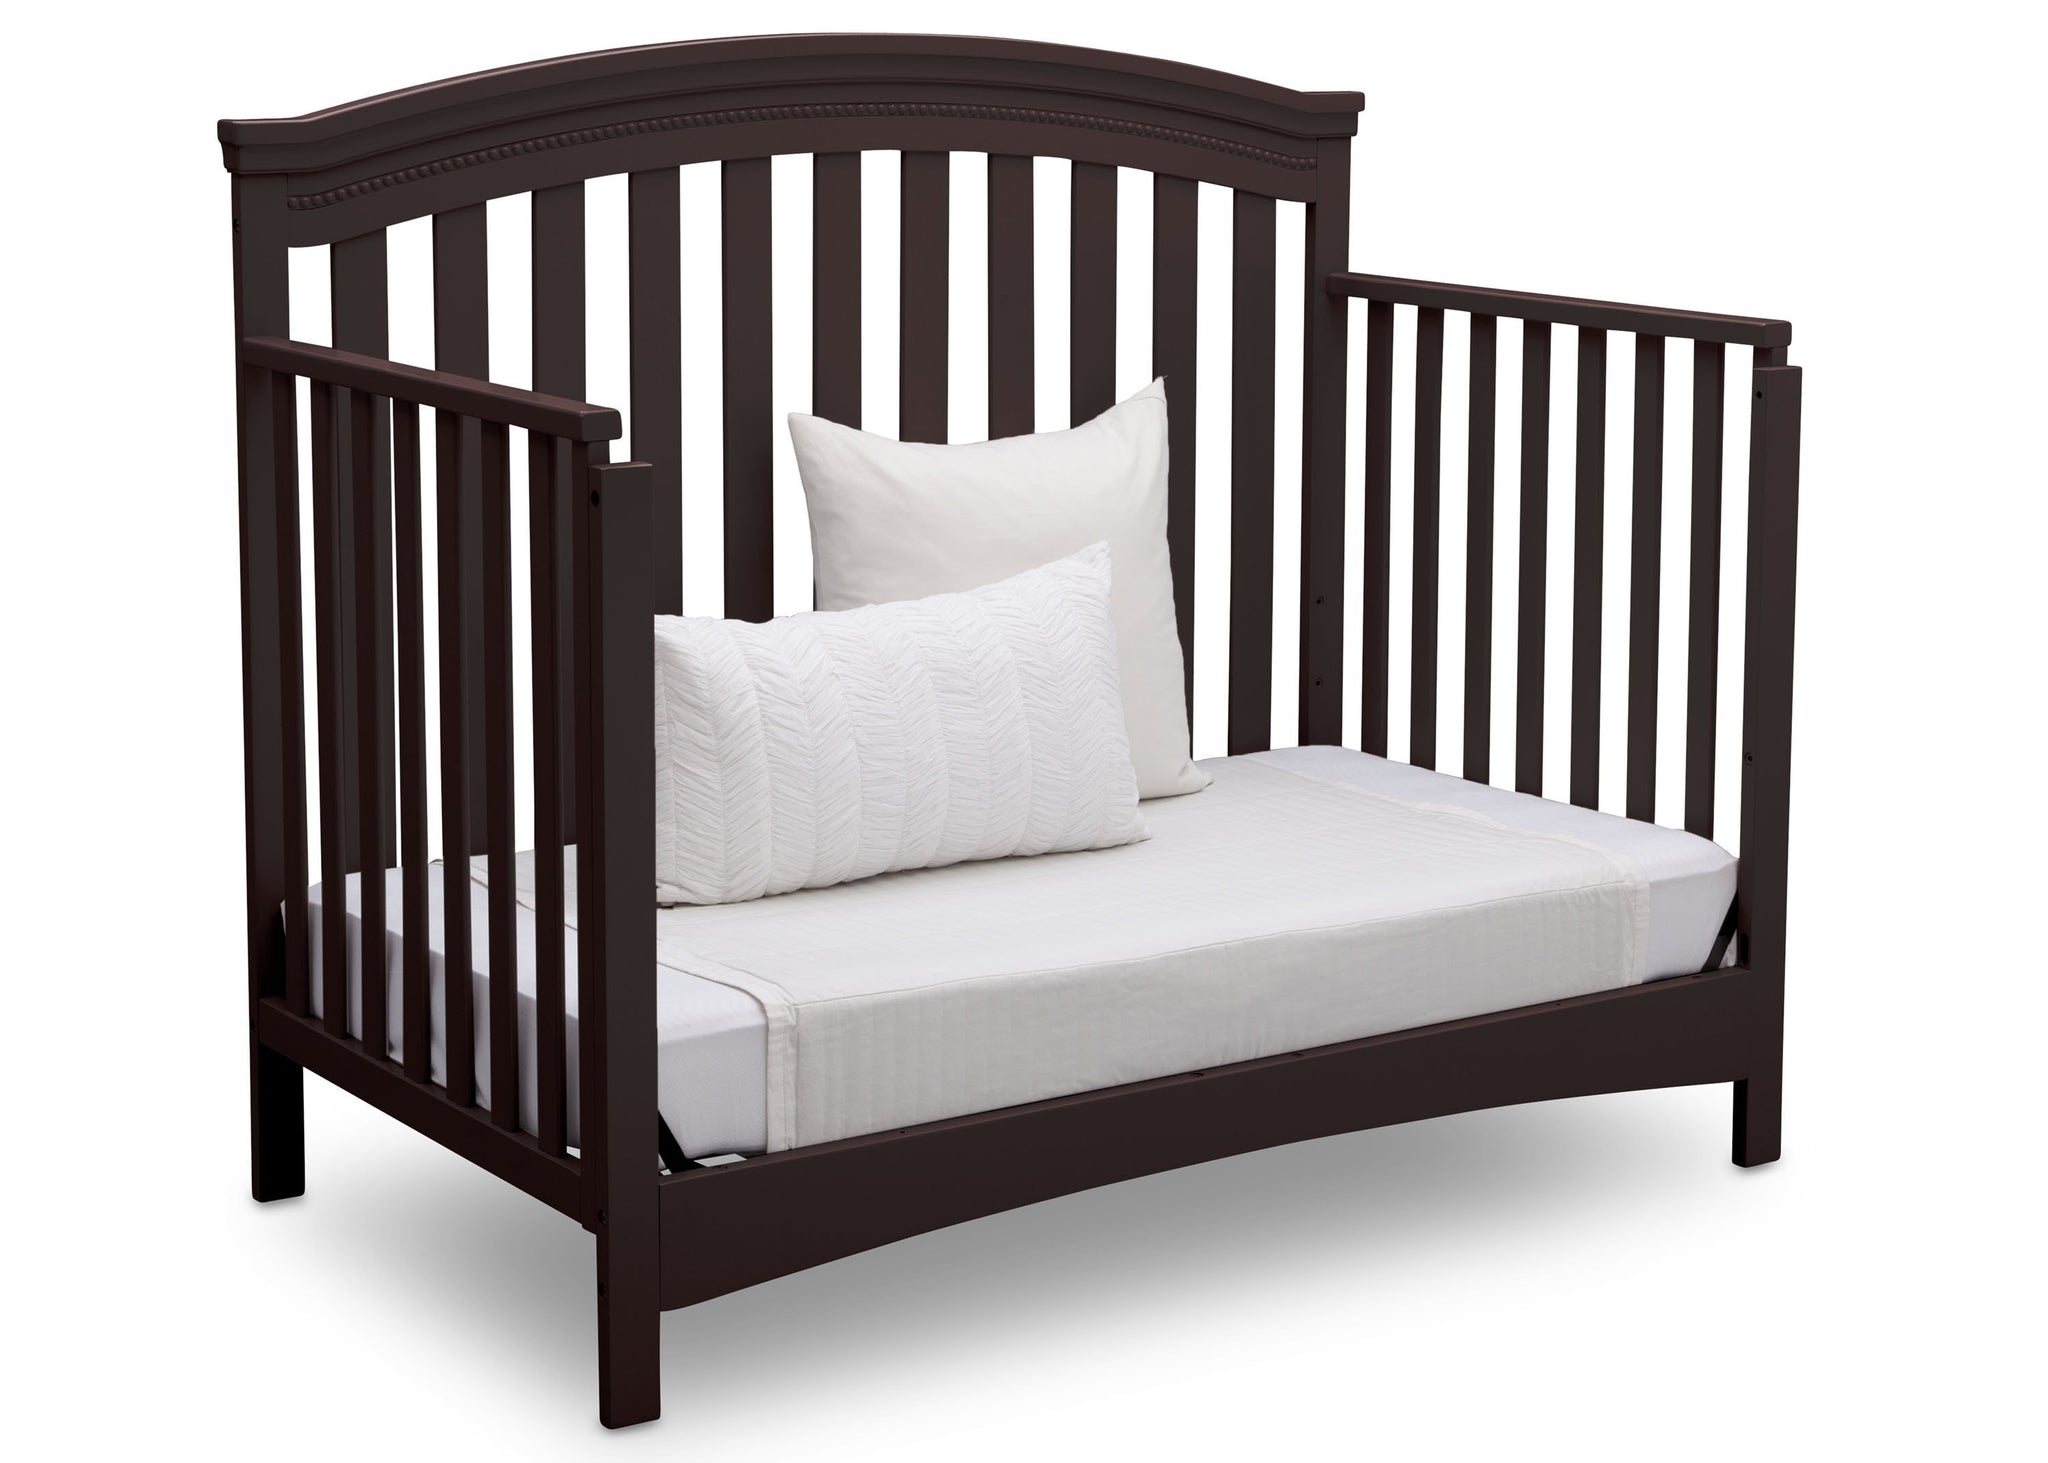 Delta Children Dark Chocolate (207) Emerson 4-in-1 Crib, angled conversion to daybed, c4c